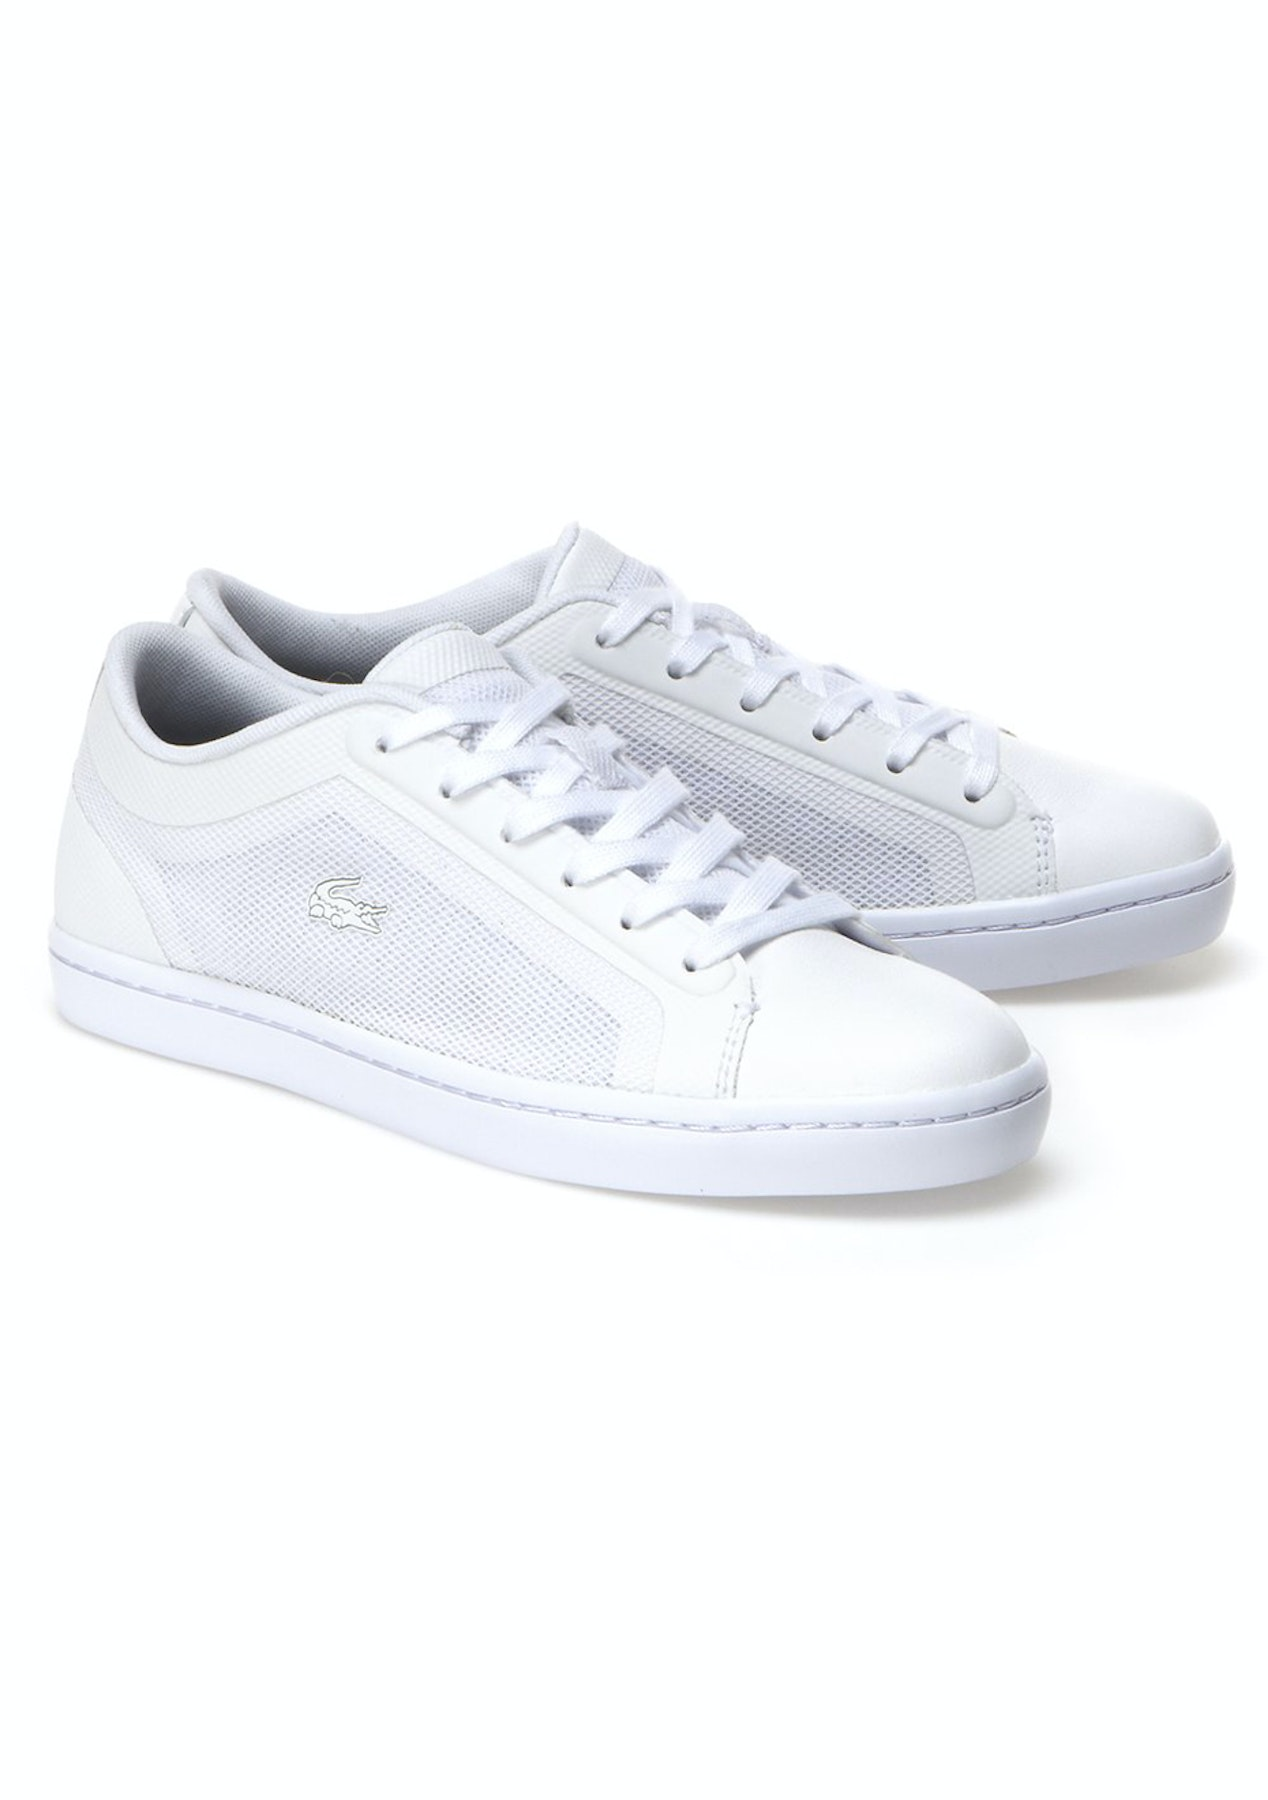 4ed039425ac3 Lacoste - Womens Straightset - White - Lacoste - Onceit